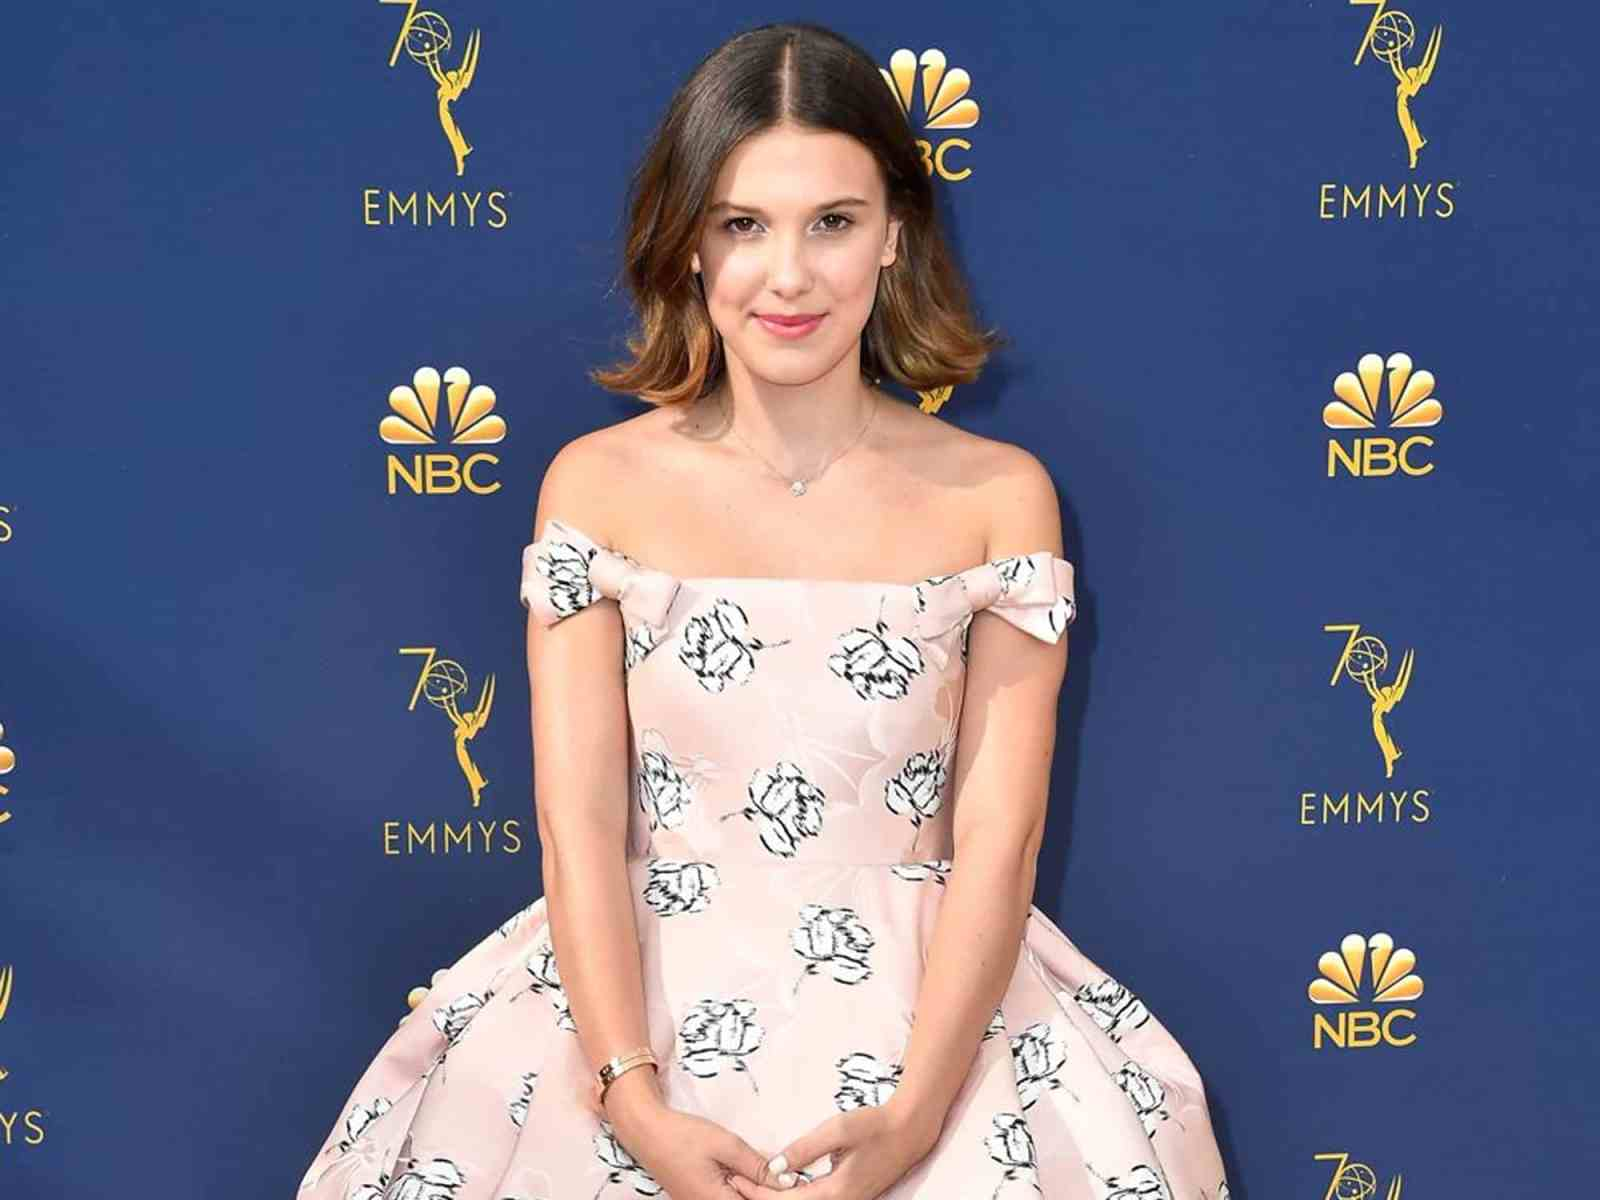 The Emmys 2018 best dressed might be the best dressed of all time. If you loved the 70th annual Emmys red carpet, then check out our favorite gowns.